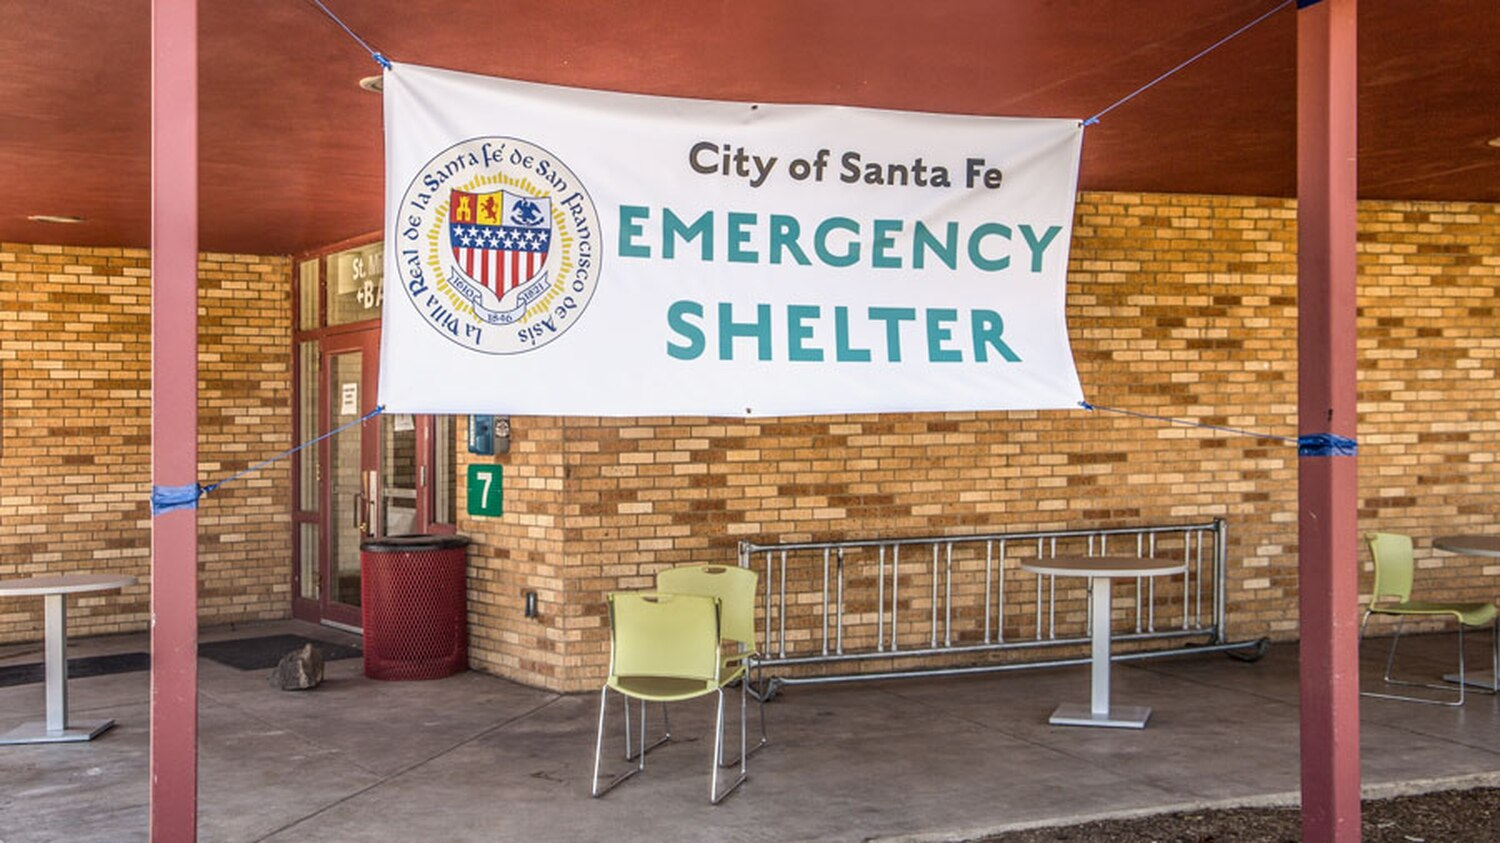 The Midtown Emergency Shelter on the former campus of the Santa Fe University of Art and Design gave homeless people the opportunity to self-isolate and prevent the spread of COVID-19.